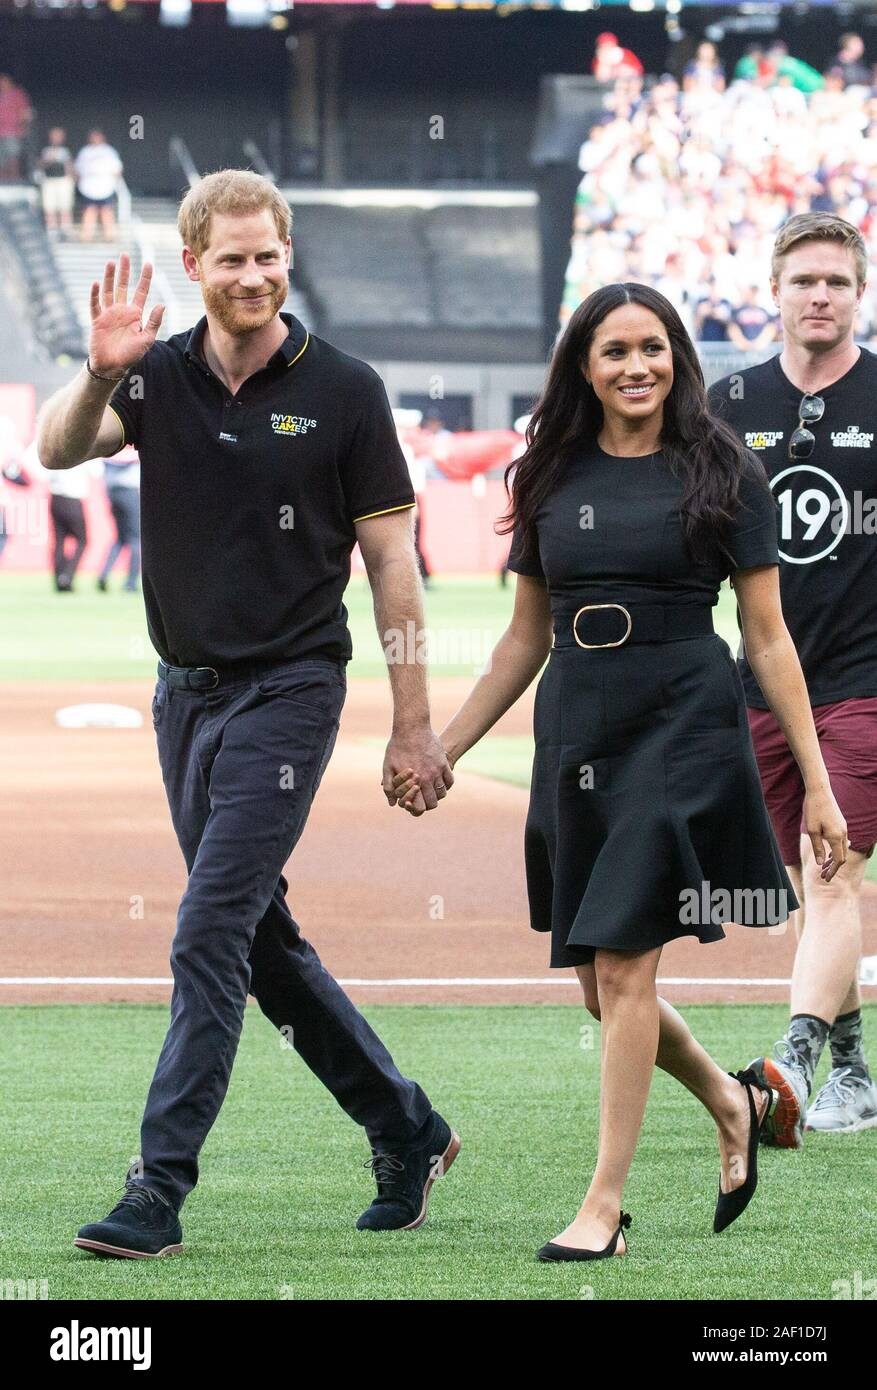 London, UK. 12th Dec, 2019. The Duke and Duchess of Sussex, Prince Harry, and Meghan, walk on the field when the New York Yankees play the Boston Red Sox at the London Stadium in the Queen Elizabeth Olympic Park in London on Saturday, June 29, 2019. Europe's first-ever Major League Baseball game is being played at the London Stadium. Photo by Mark Thomas/UPI Credit: UPI/Alamy Live News Stock Photo